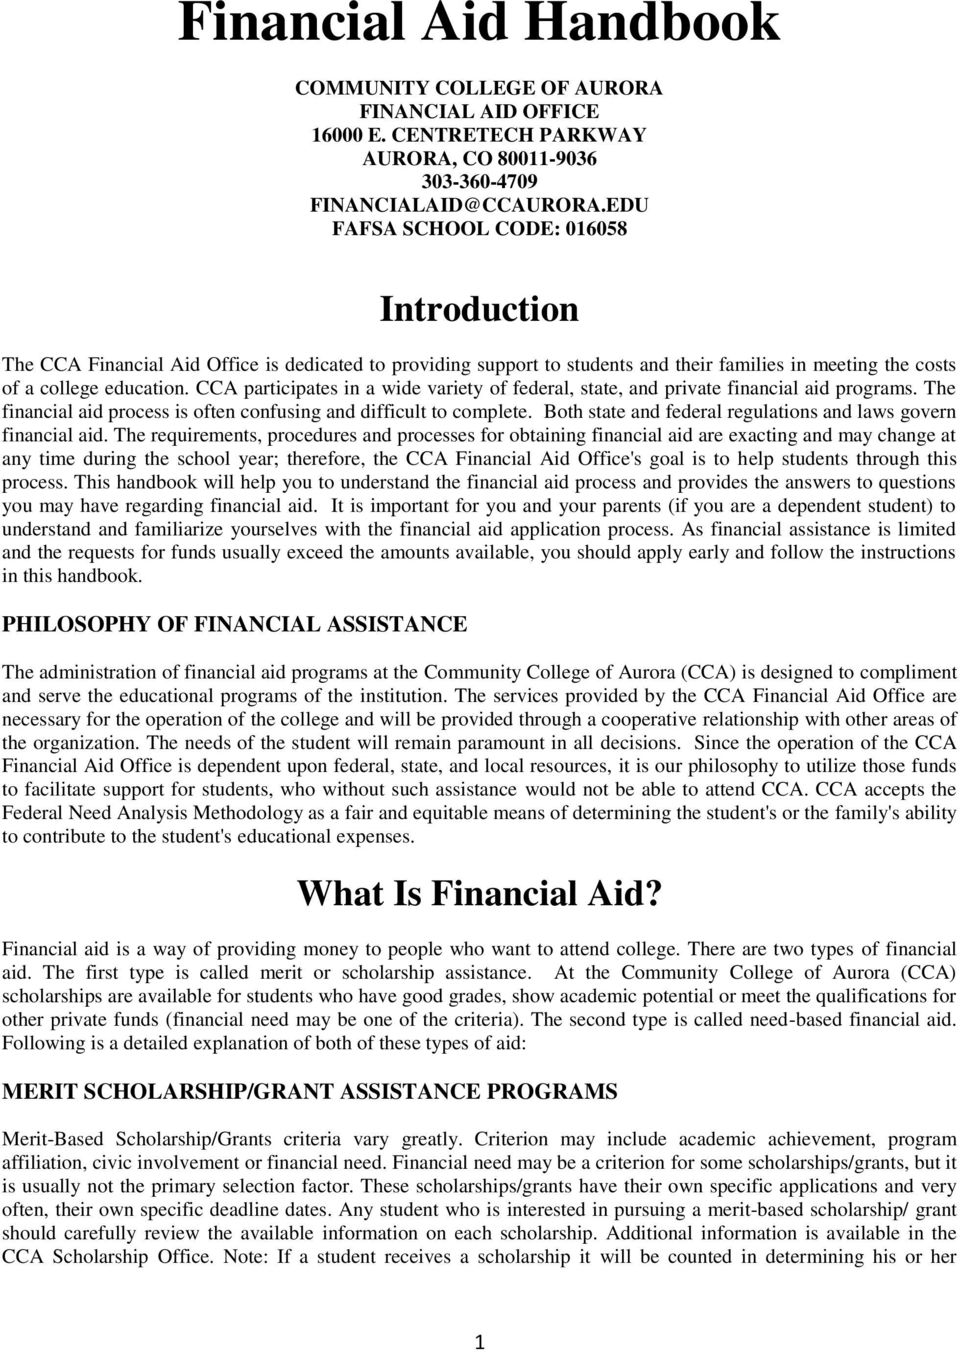 CCA participates in a wide variety of federal, state, and private financial aid programs. The financial aid process is often confusing and difficult to complete.